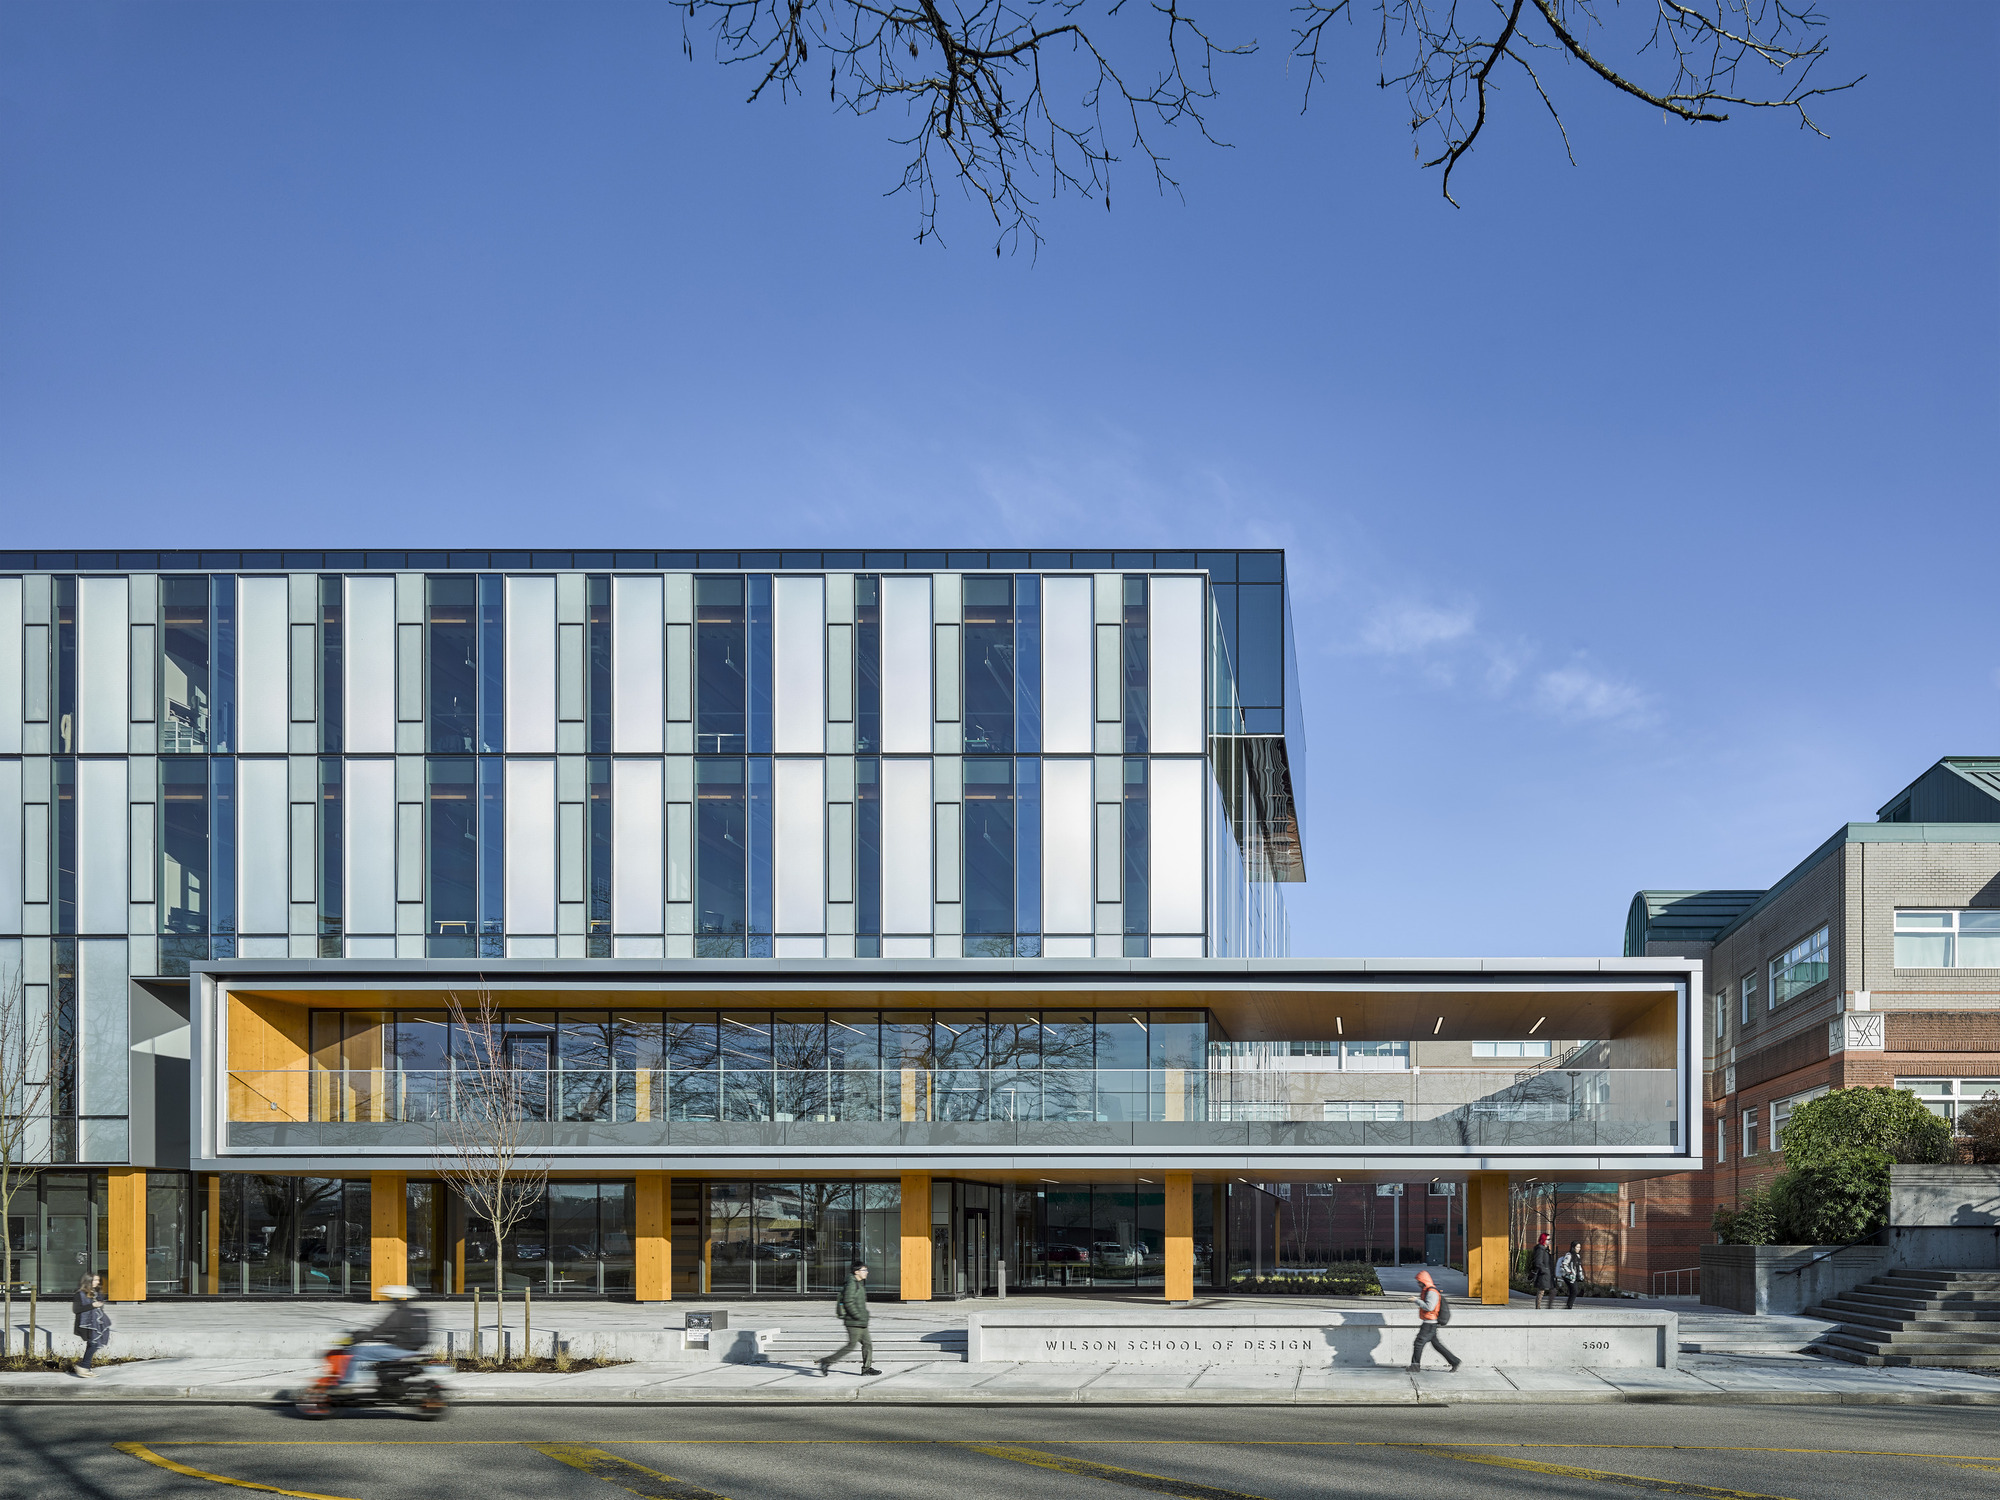 architecture wilson kpmb architects communication building university kpu facade archdaily exterior kwantlen polytechnic universities interior read latreille andrew